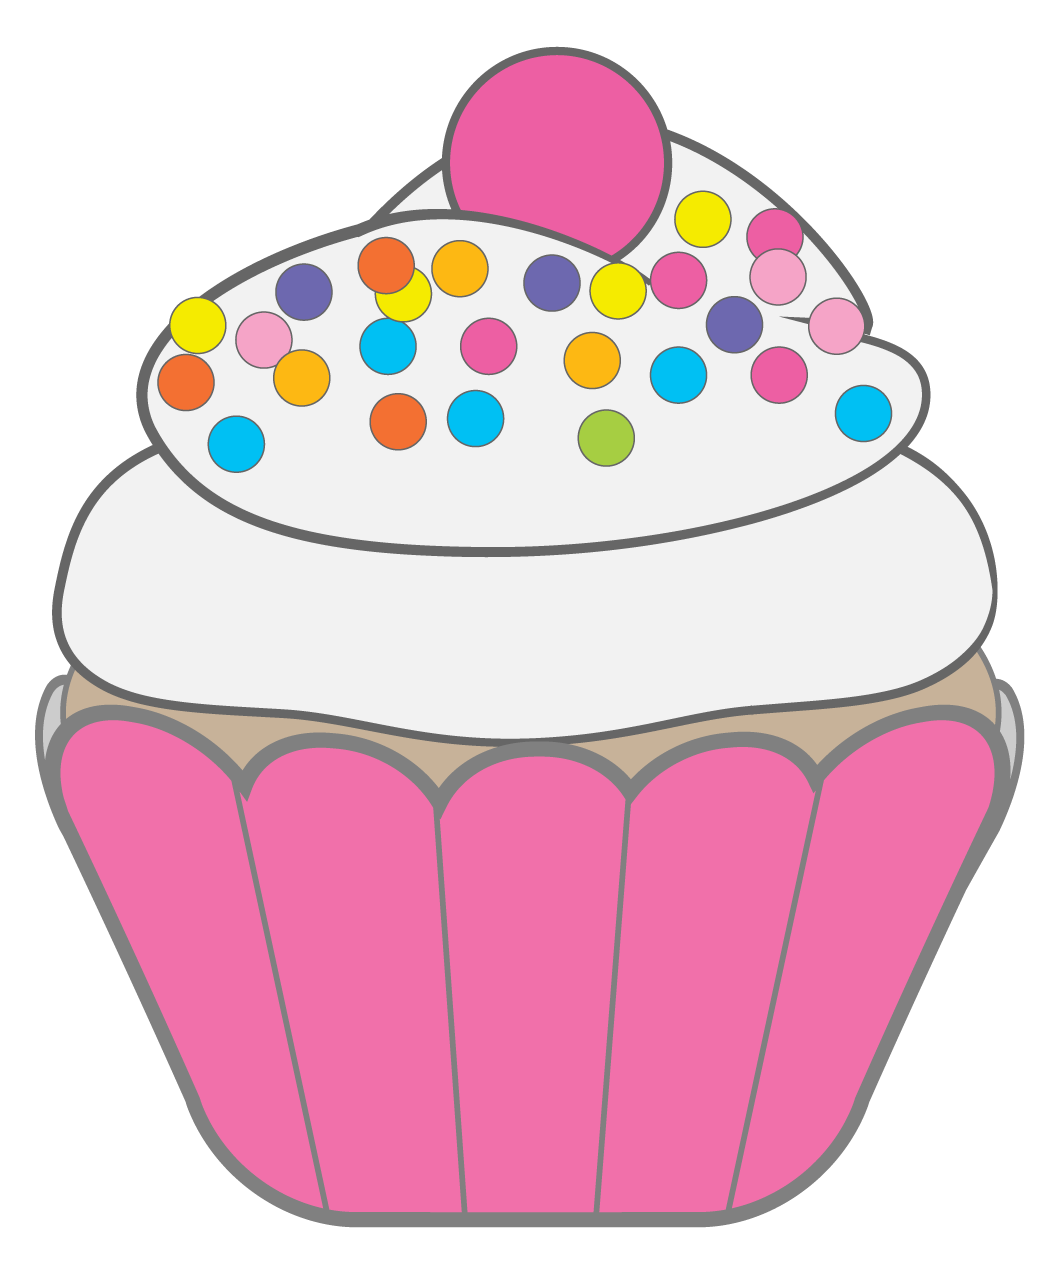 Happy birthday cupcake clip. Cake clipart image download